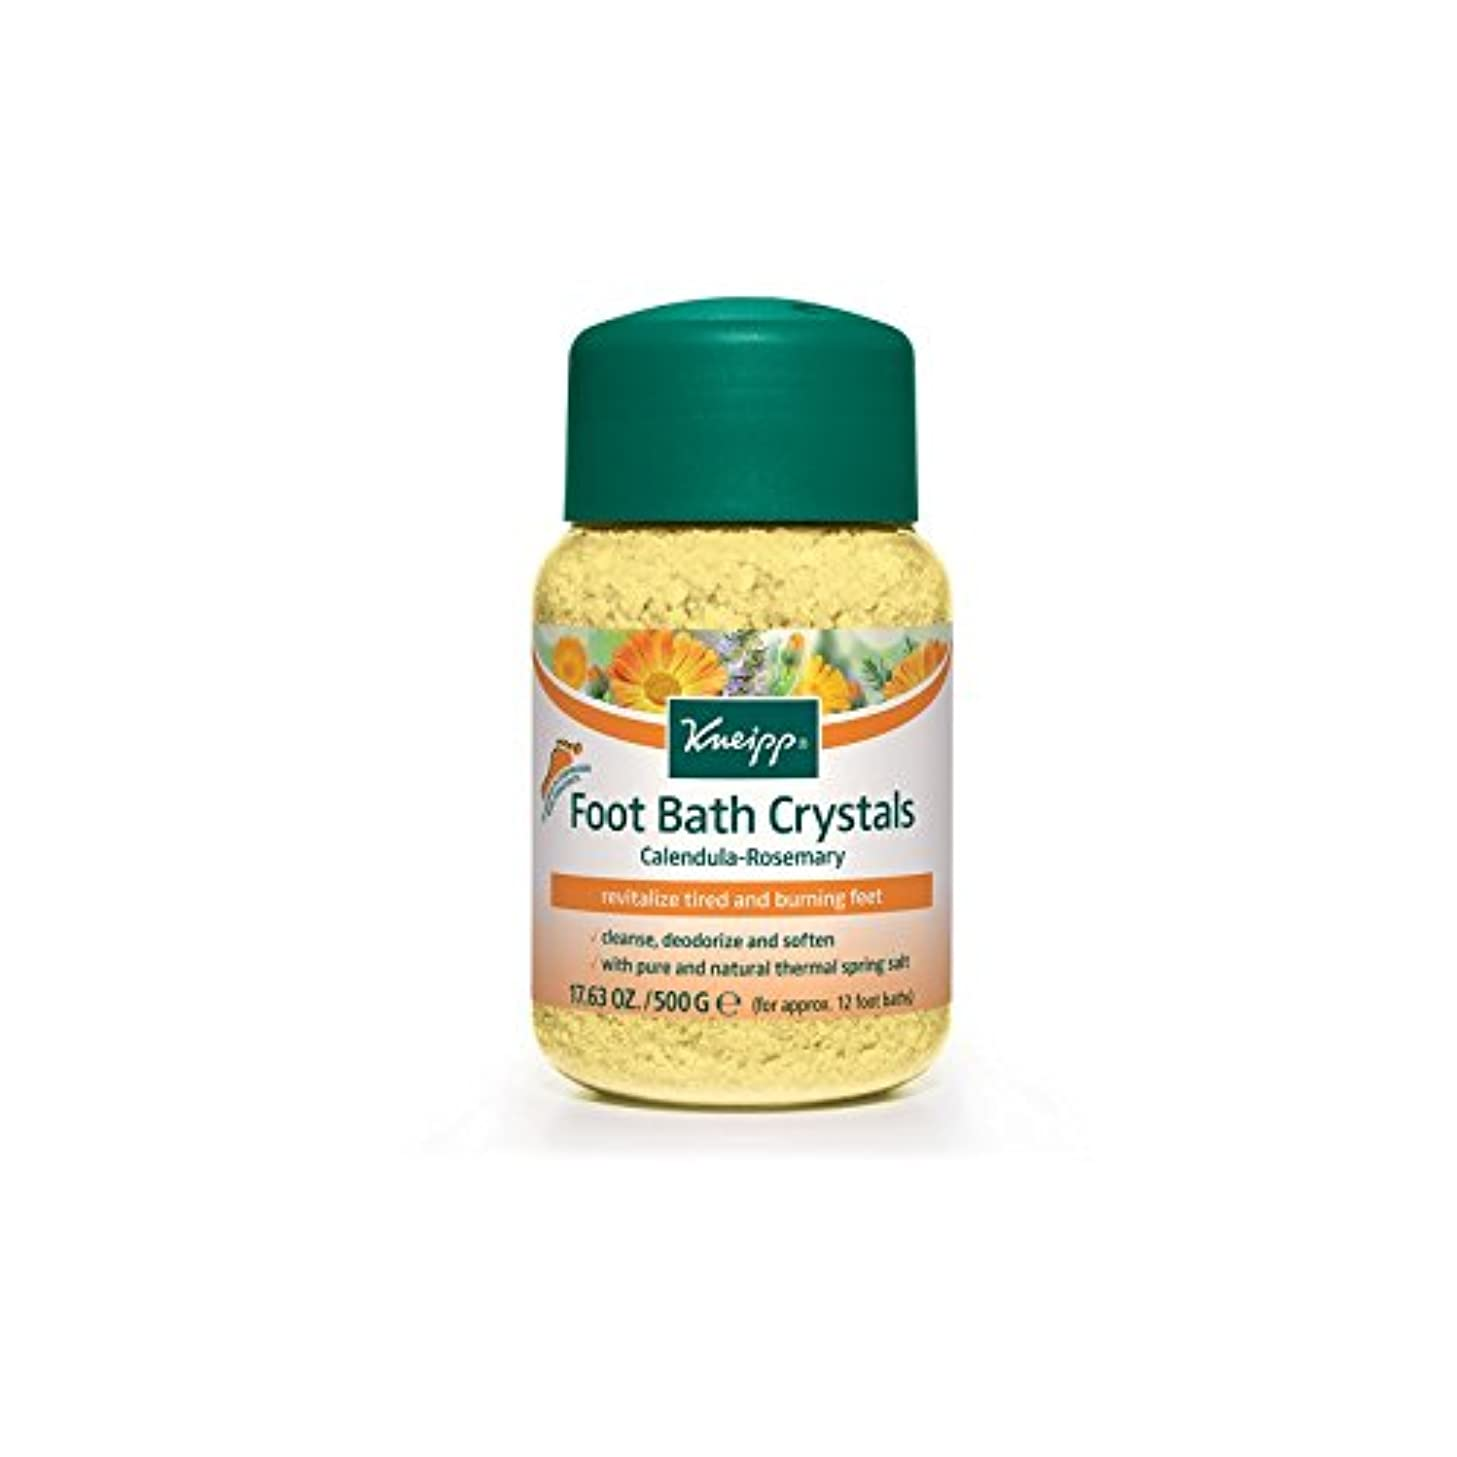 Kneipp Foot Crystals (500g) (Pack of 6) - クナイプ足の結晶(500グラム) x6 [並行輸入品]